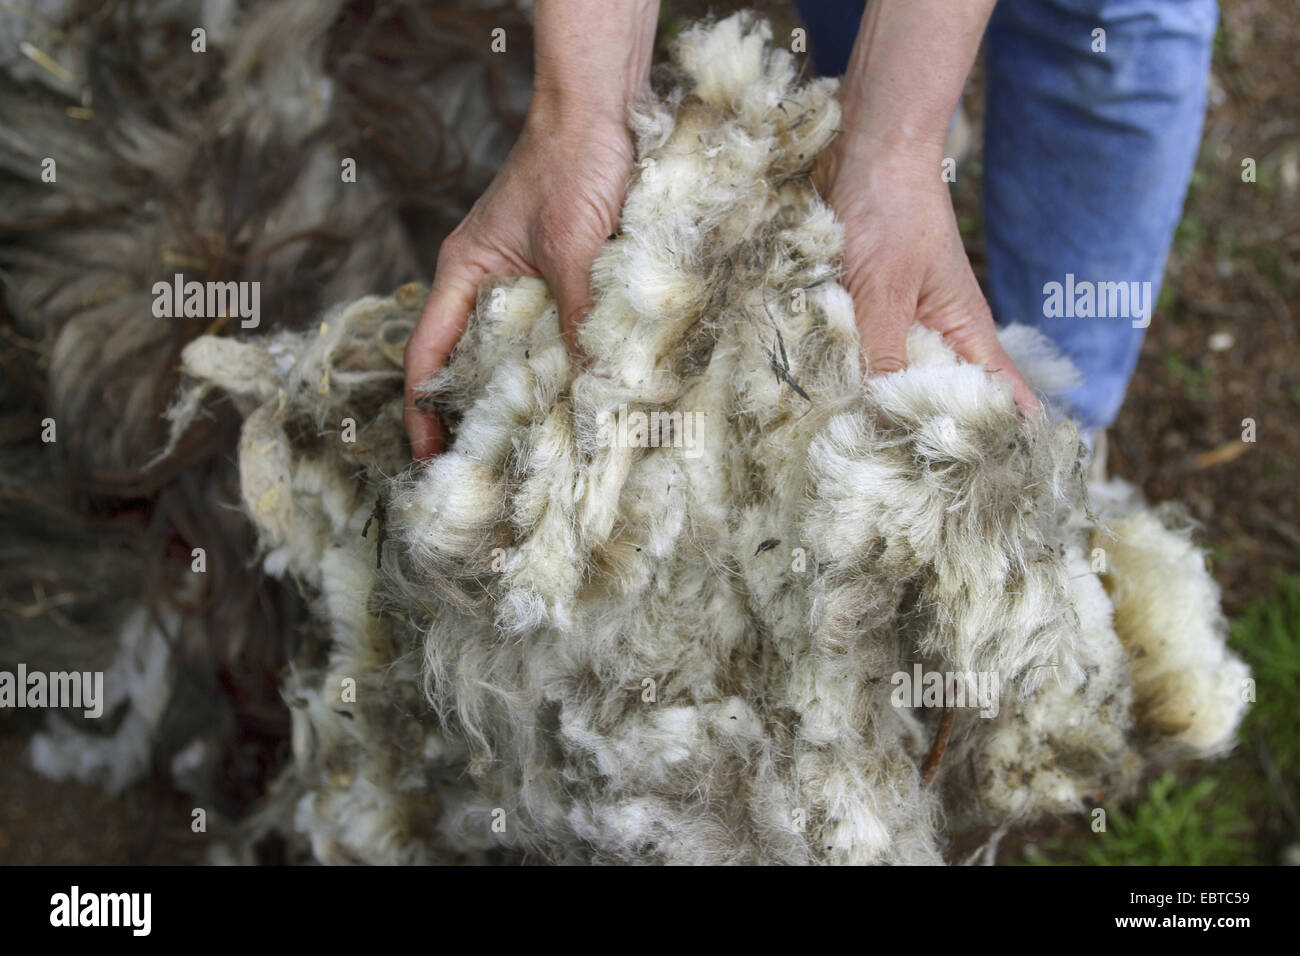 just clipped sheep whool, Germany - Stock Image